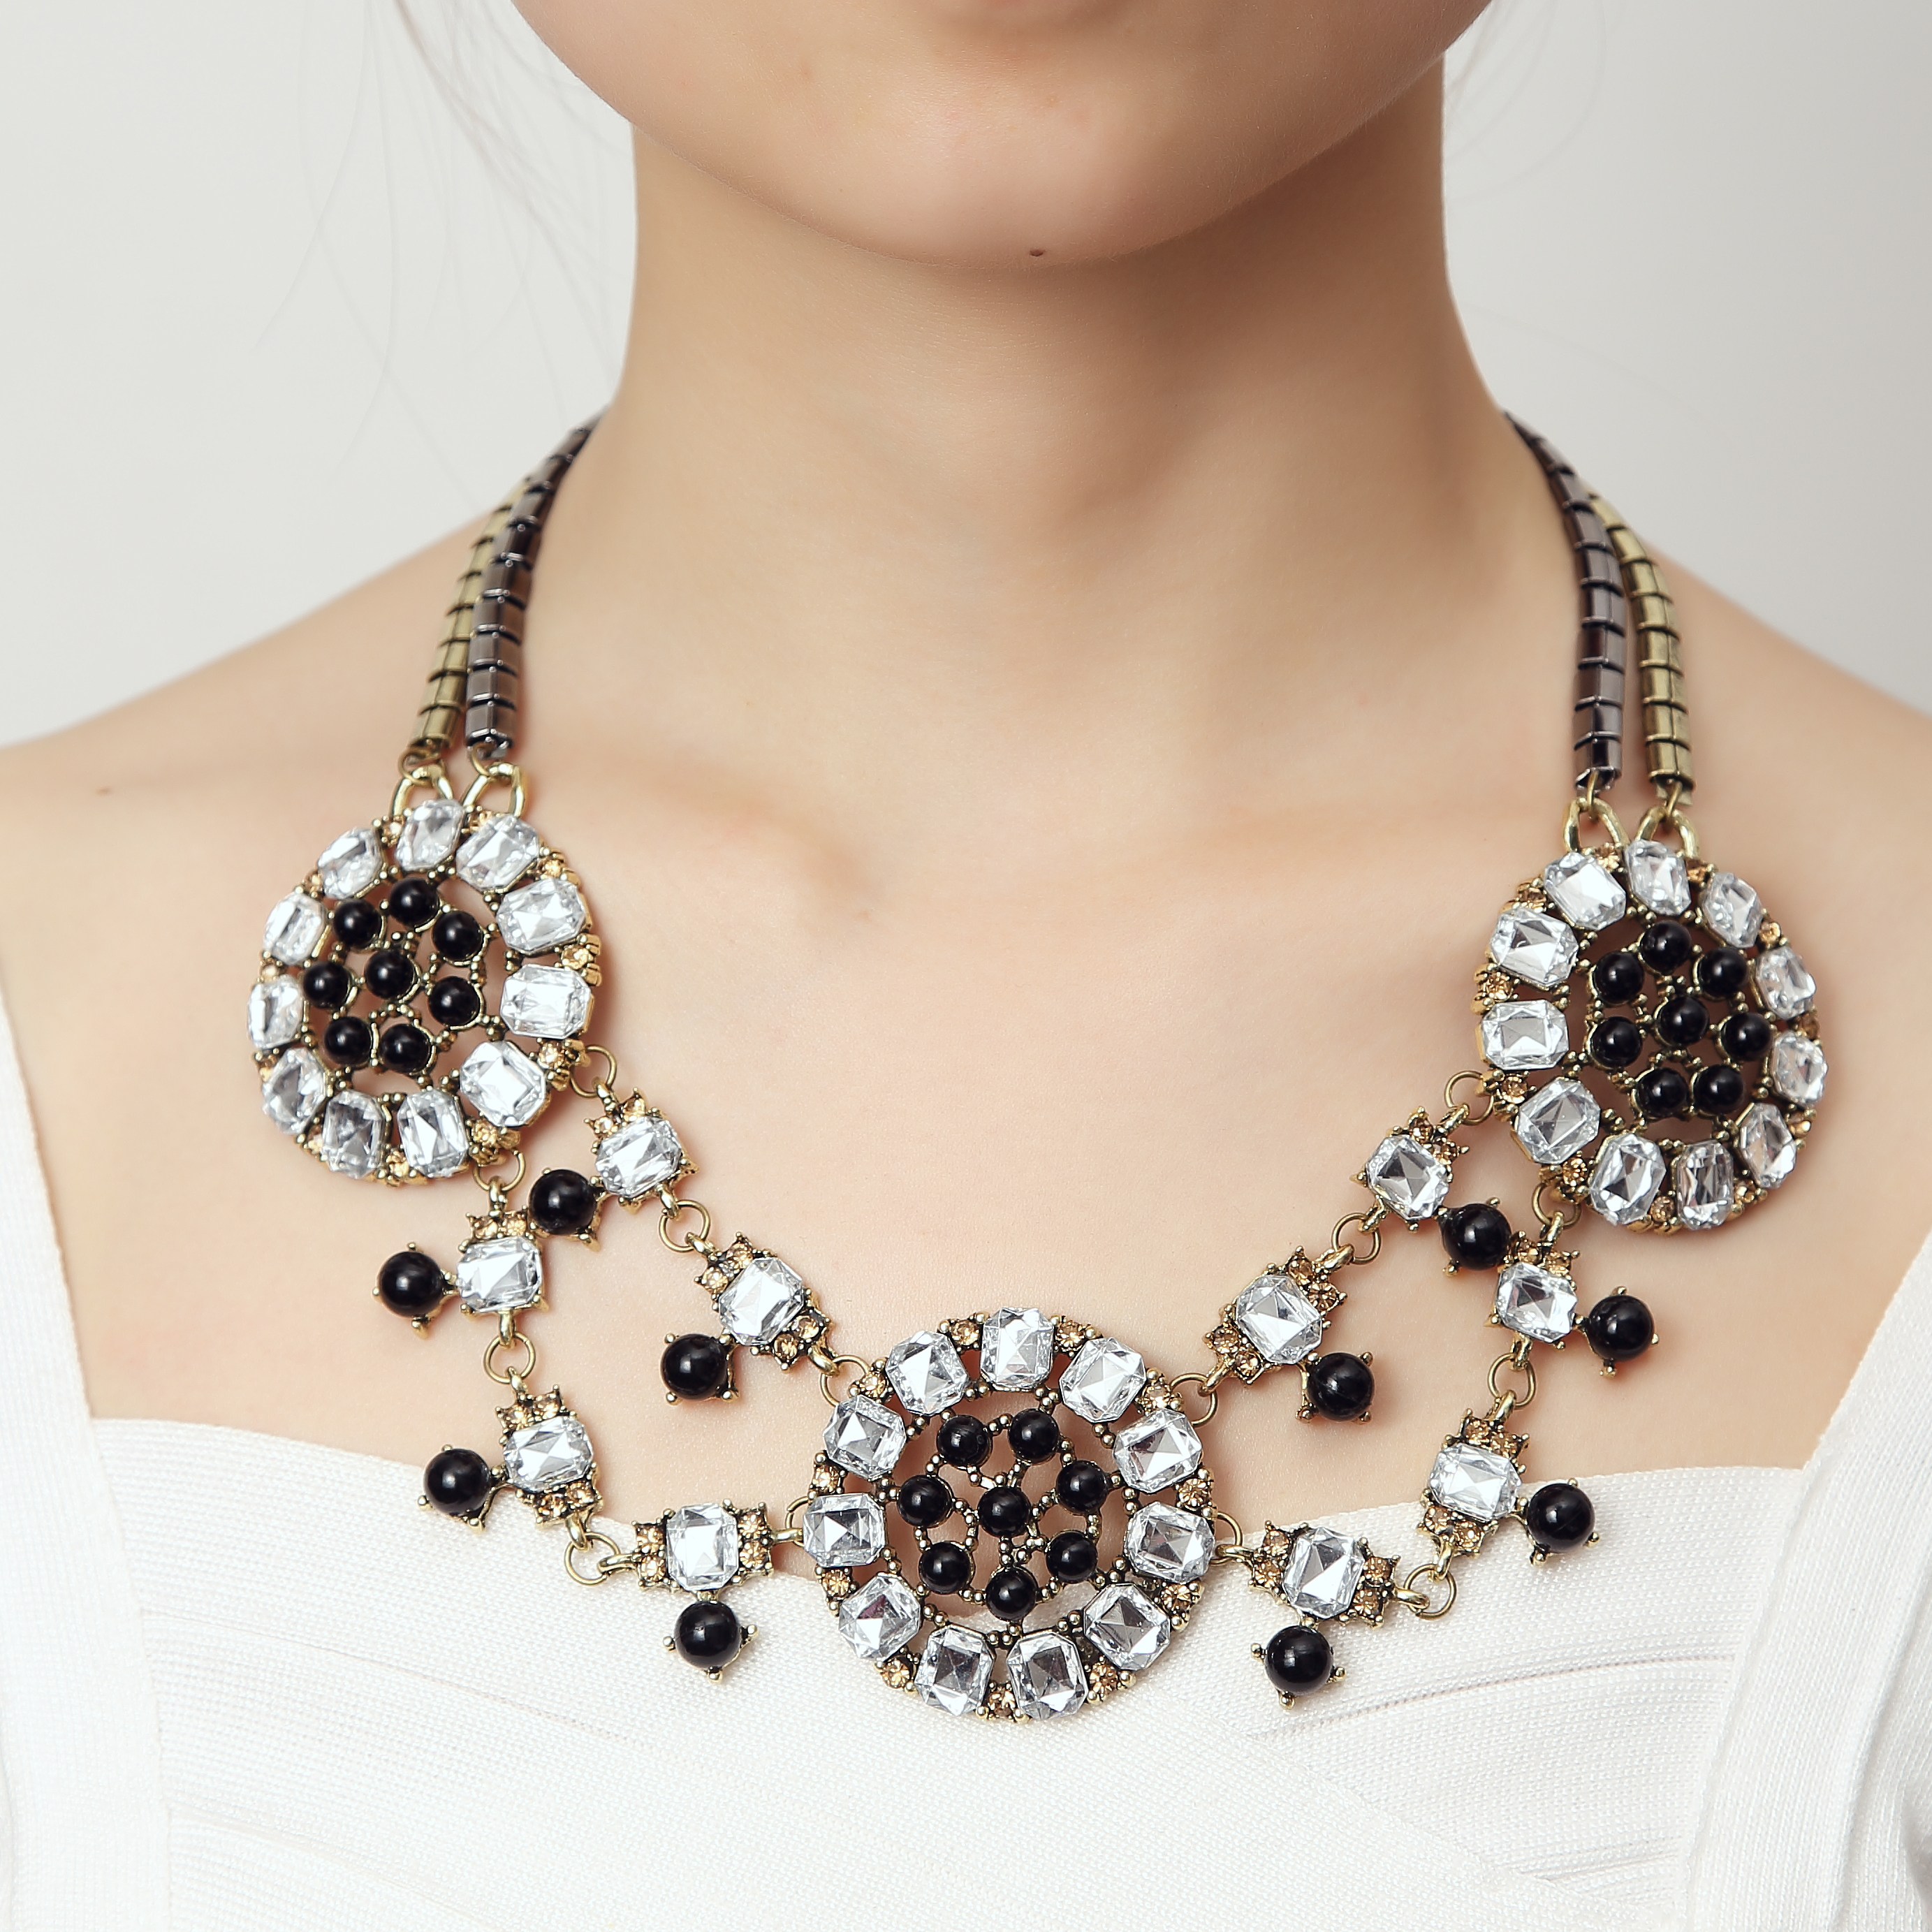 Retro Queen Geometric Crystals Statement Necklace d07d826b6cad